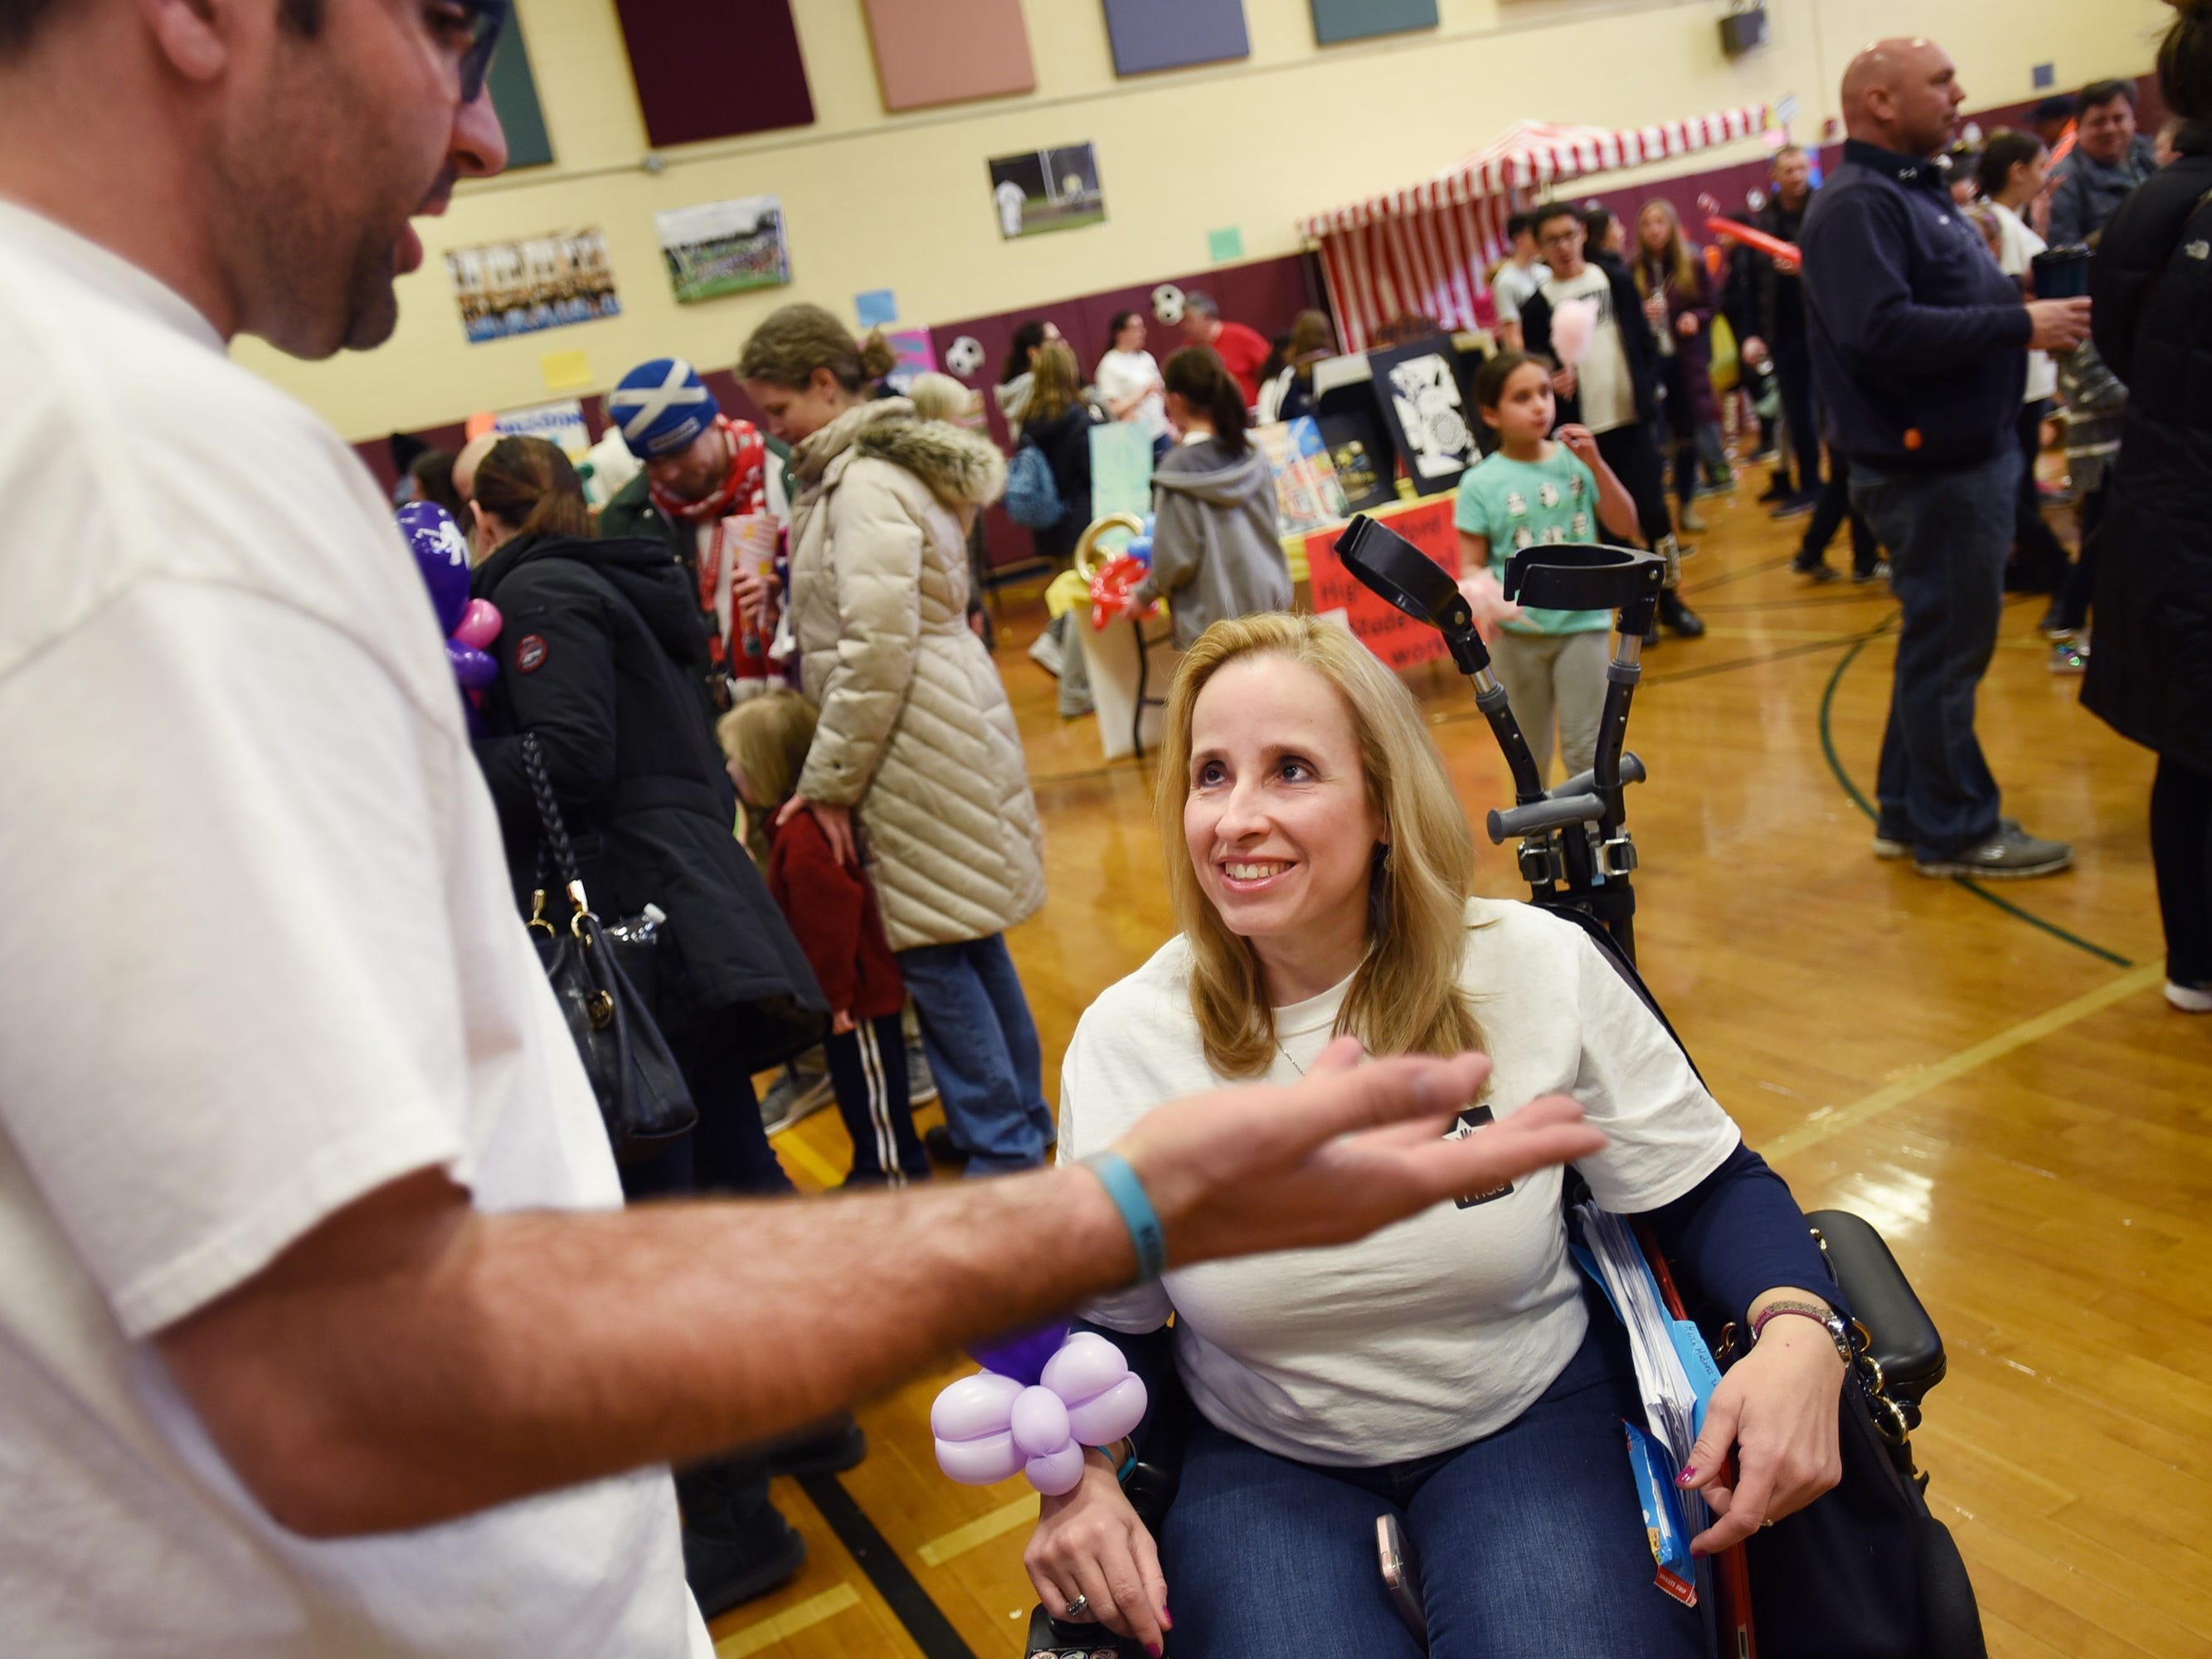 Maria DeTrizio, Co-Chair of The Rutherford Education Association Food and Fun Day 3rd Annual, talks with her Co-Chair Shaun Bach (L) during the 3rd annual March Madness Food & Fun Day to benefit the Rutherford Food Pantry hosted by the Rutherford Education Association at Washington School in Rutherford on 03/23/2019.